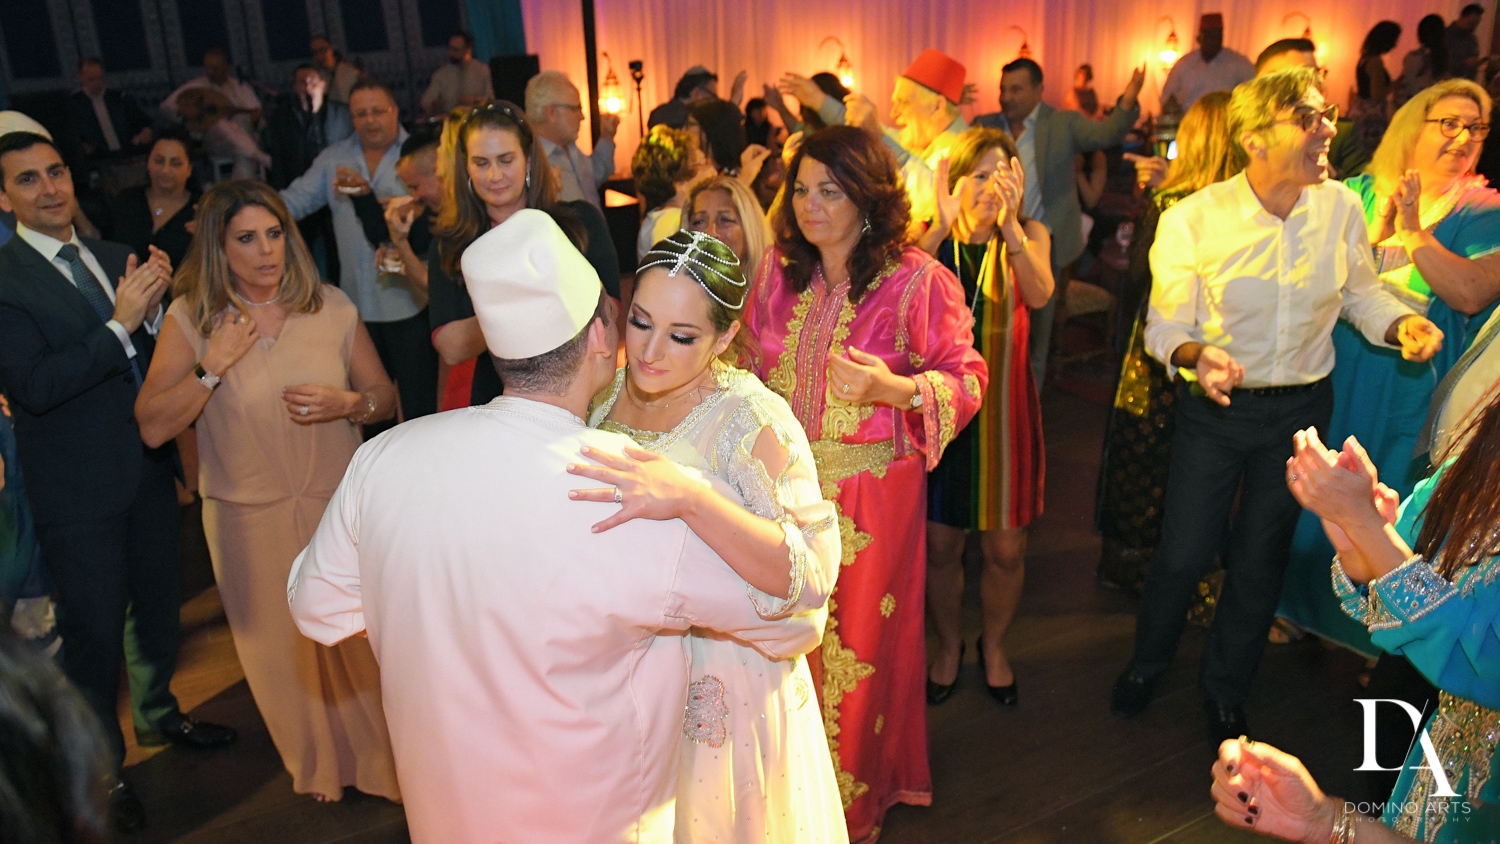 Couple dancing at Traditional Henna Party Photography at Lavan South Florida by Domino Arts